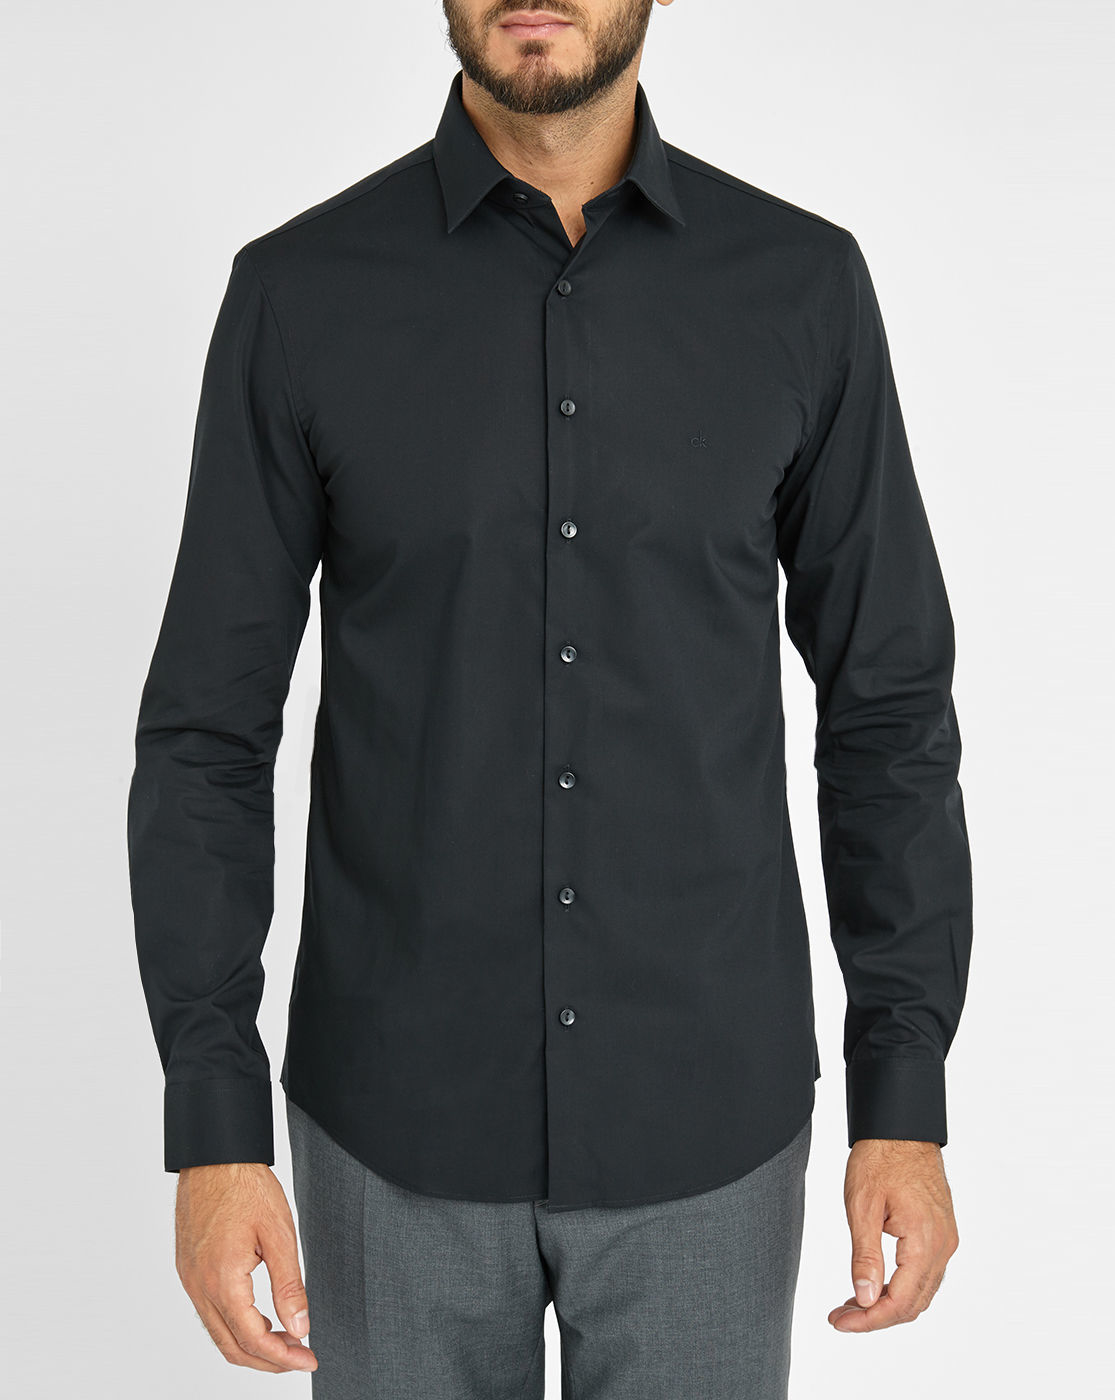 Calvin klein black chest logo stretch poplin fitted shirt for Calvin klein slim fit stretch shirt